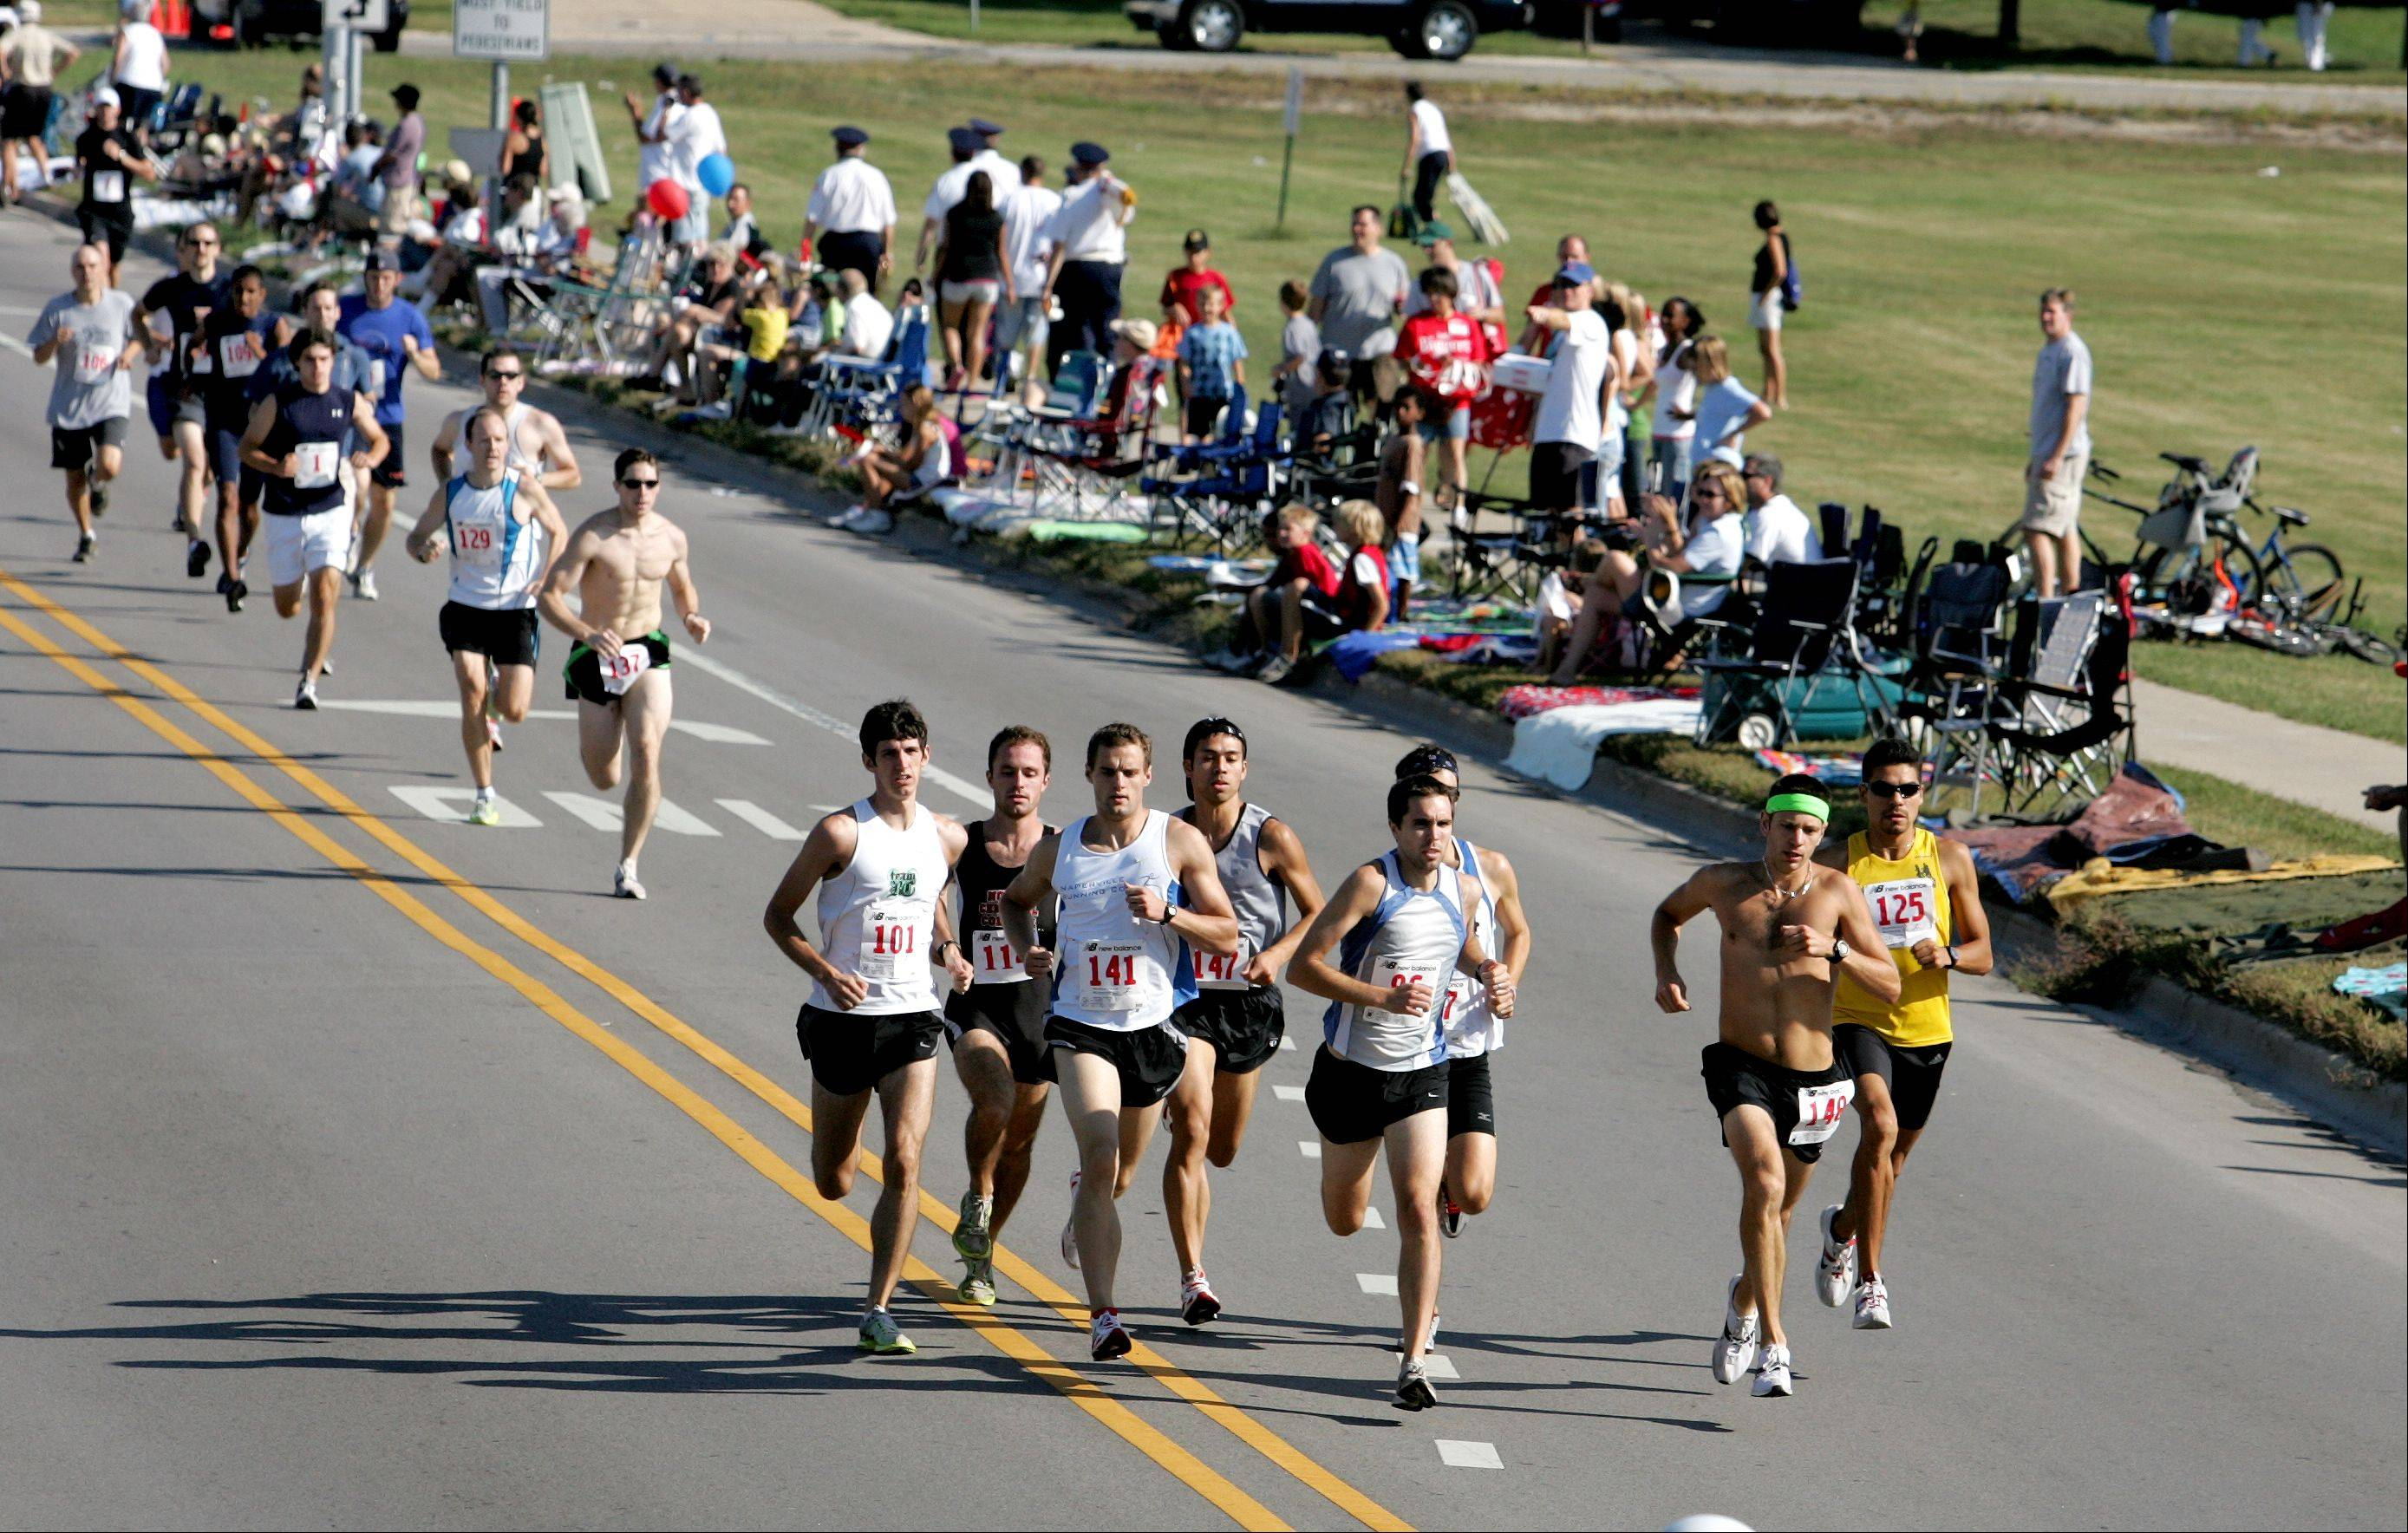 Participants in the Fling Mile in Naperville will run at 9:30 a.m. Monday along the Labor Day Parade route lined with spectators and can win awards in 12 different age groups.